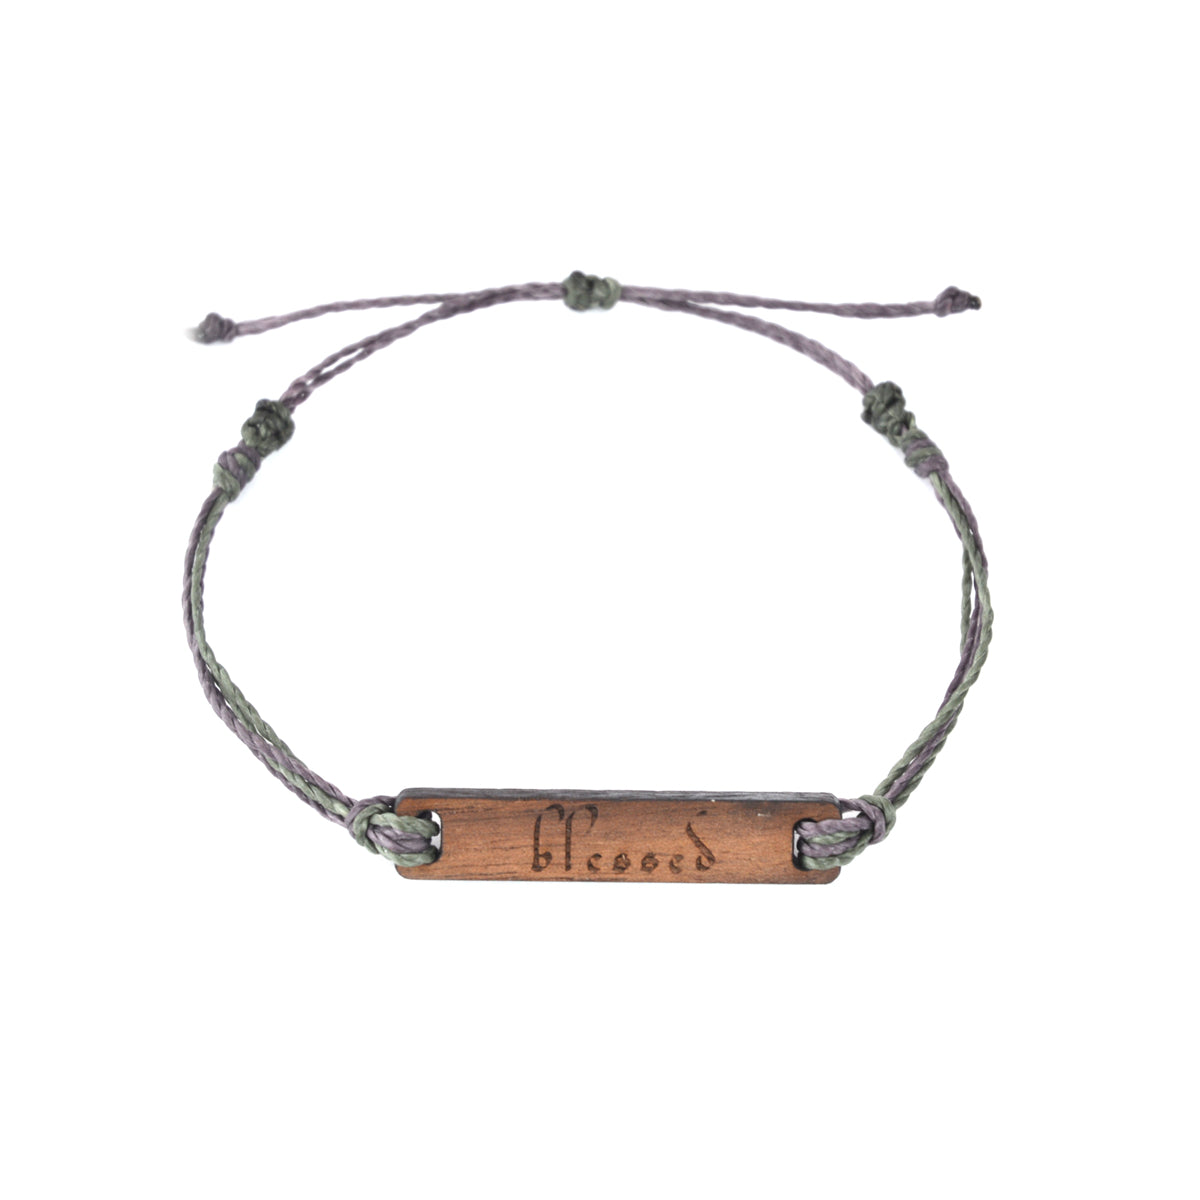 Blessed Wooden String Bracelet